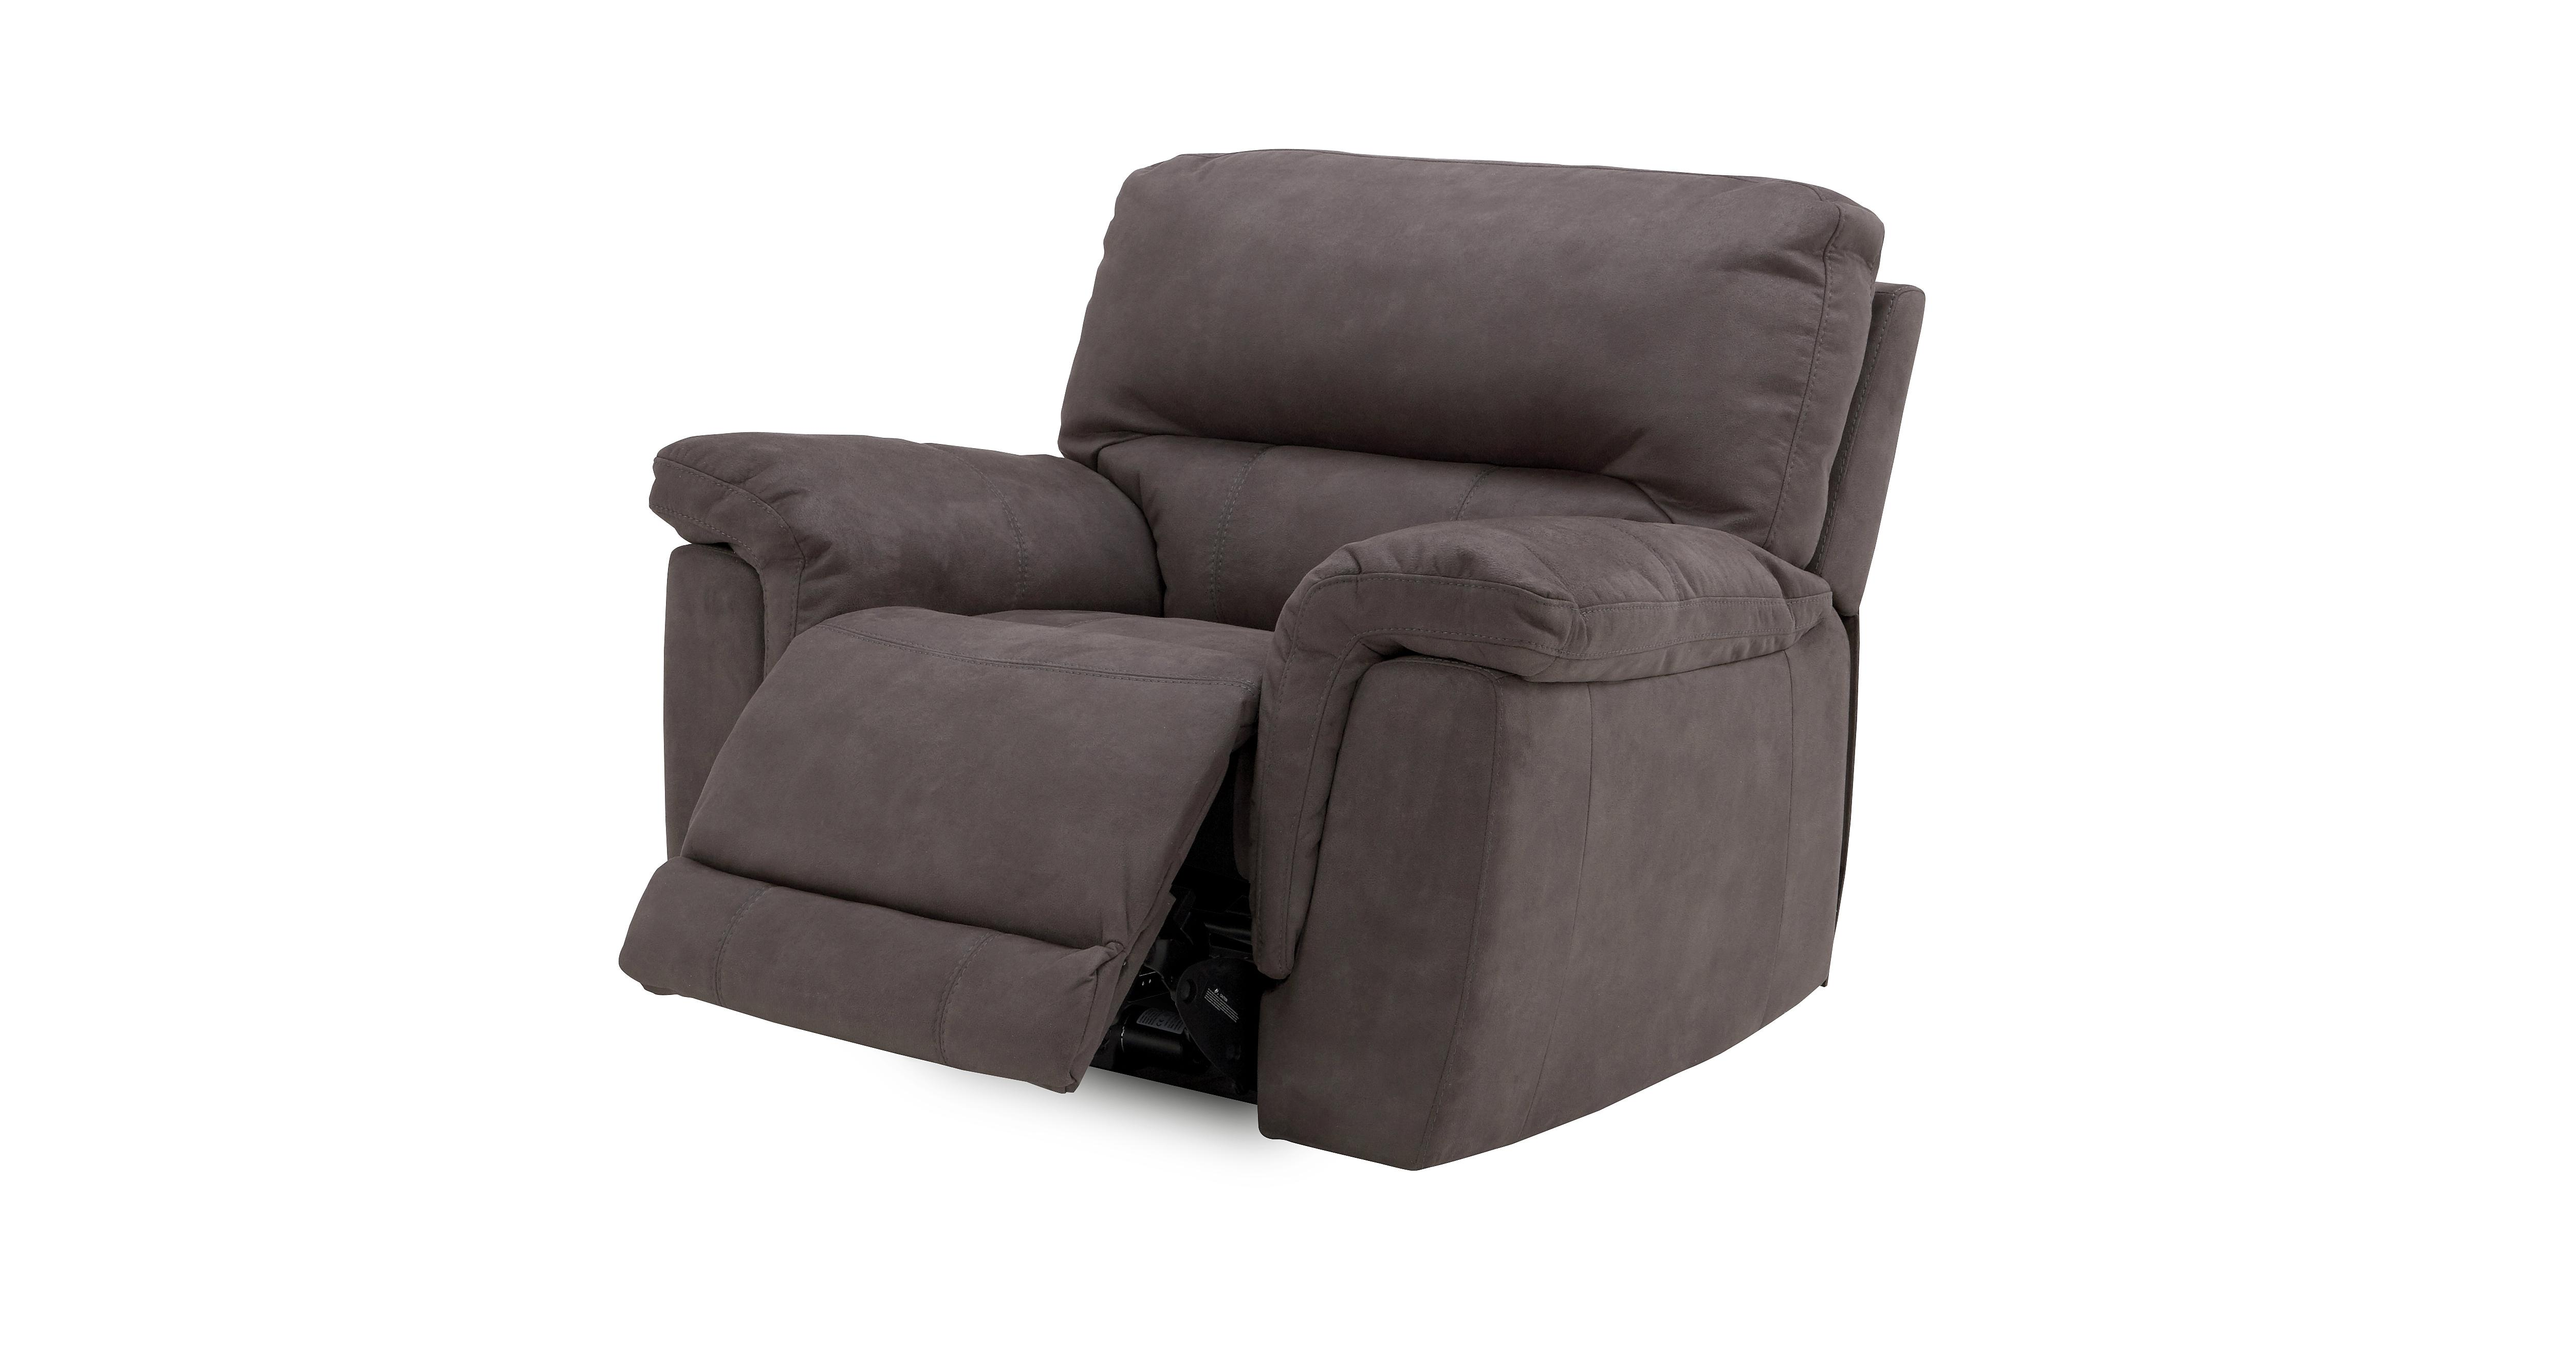 Esquire Manual Recliner Chair Arizona DFS